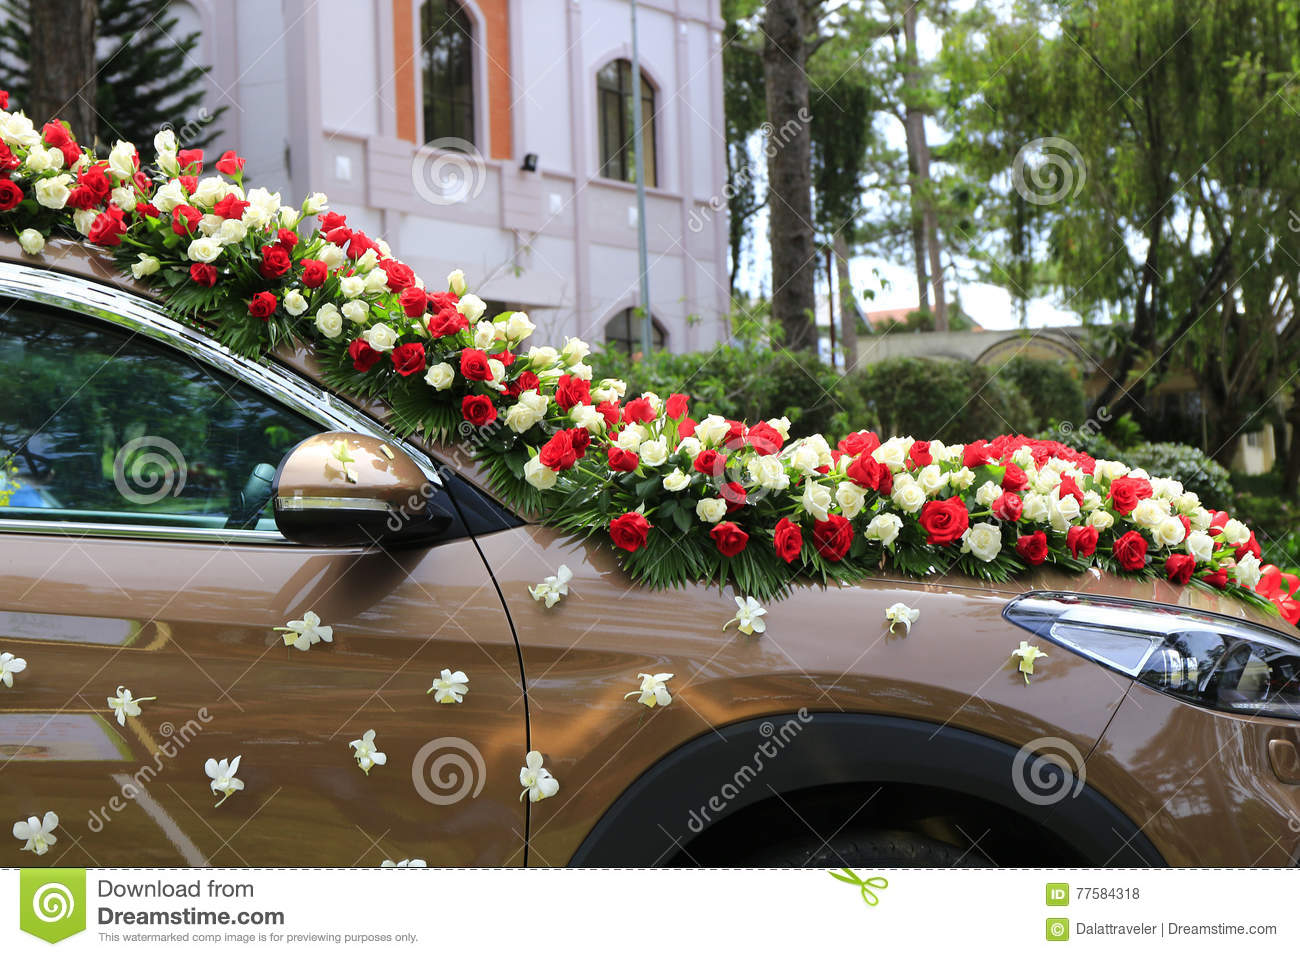 Dalat vietnam may 30 2016 wedding decoration of flowers in car dalat vietnam may 30 2016 wedding decoration of flowers in car izmirmasajfo